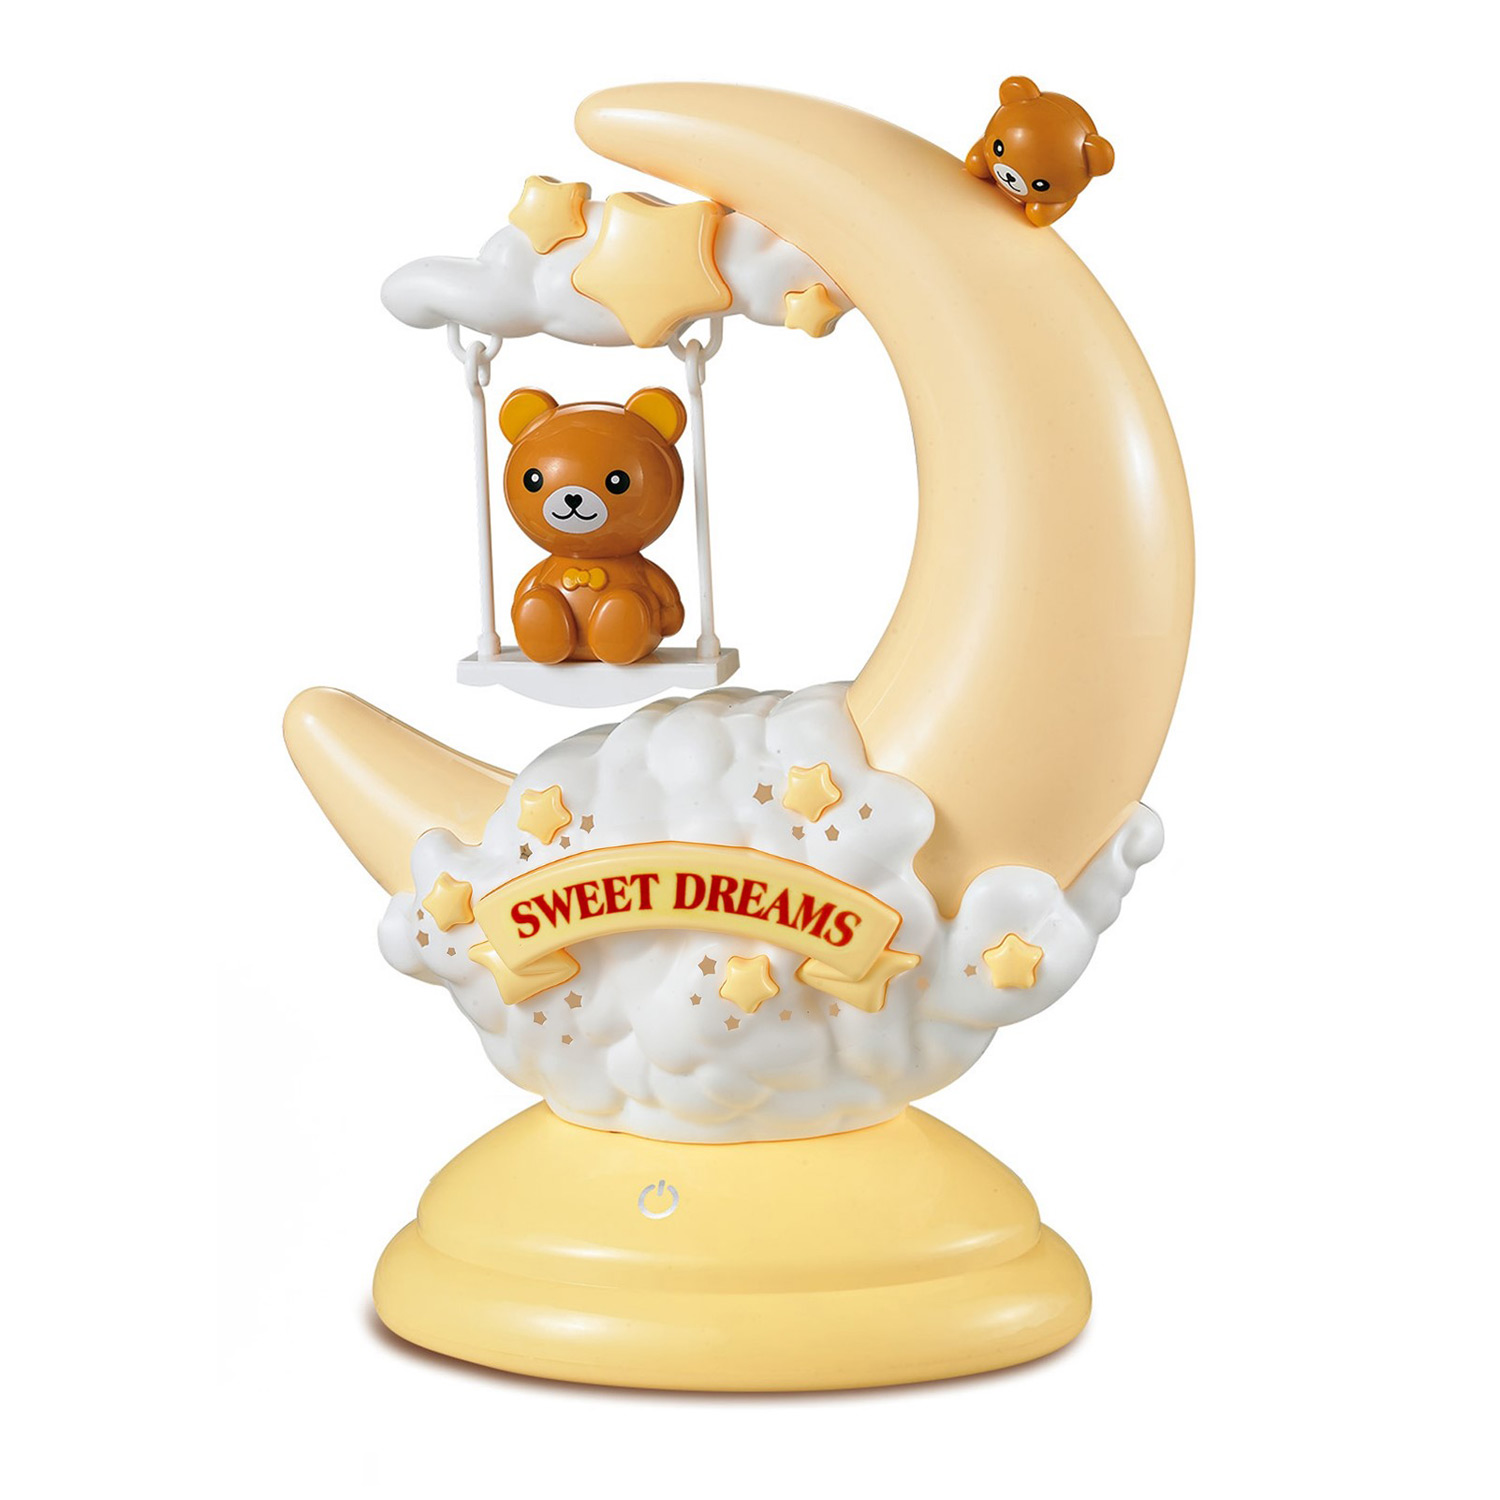 Night Light Cute Teddy Bear Animal On Movable Half Moon Swing With Sweet Dreams Touch Sensor Plus Yellow Dim Option Portable Lamp Perfect For Boy Girl Infant Toddler Baby Nightlight Gifts